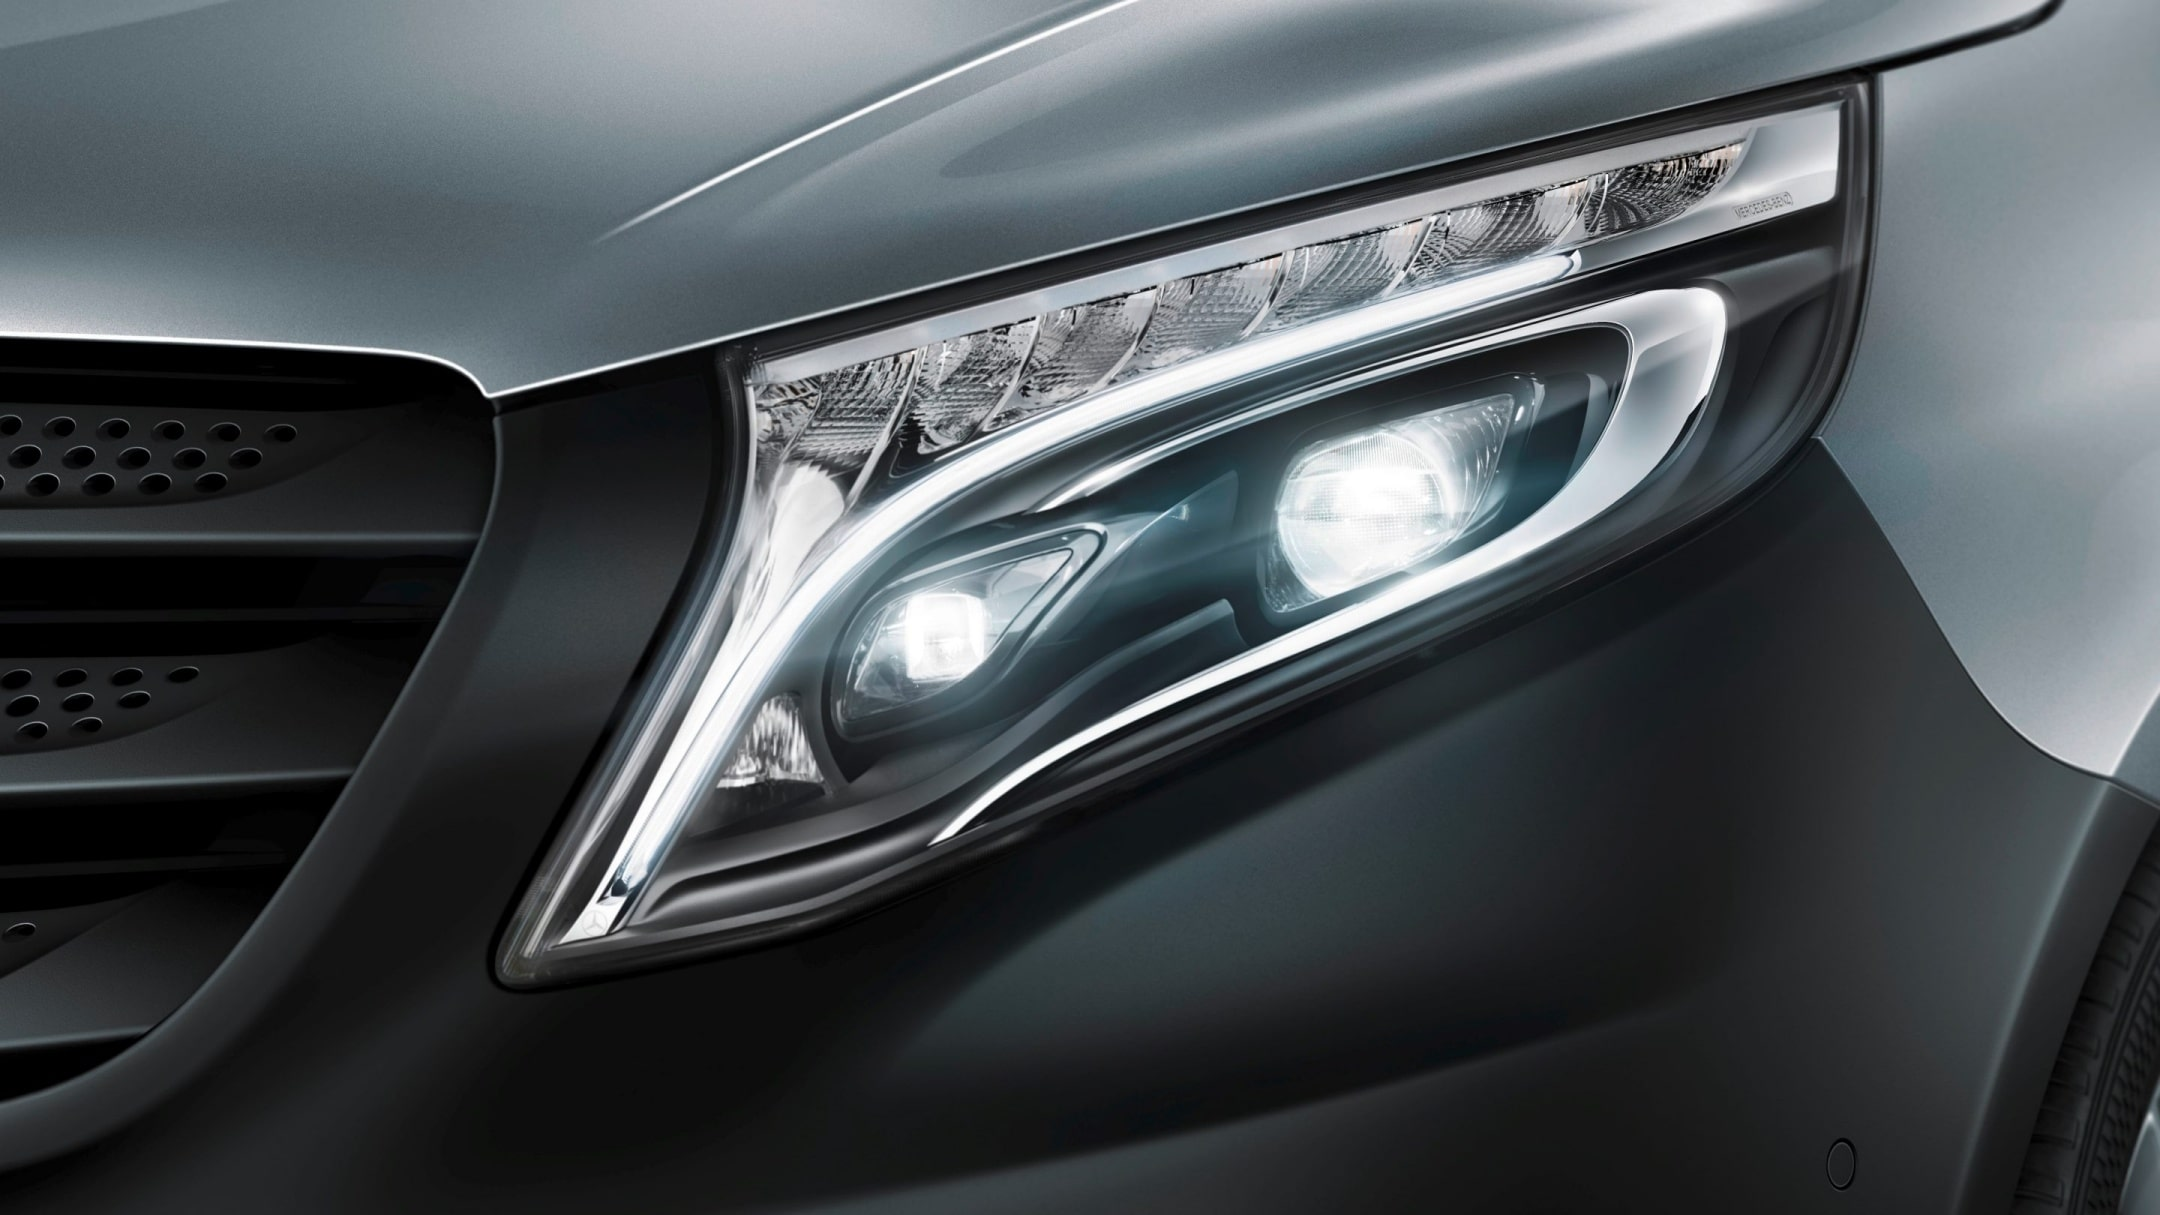 Vito Tourer, LED Intelligent Light System (akıllı ışık sistemi)